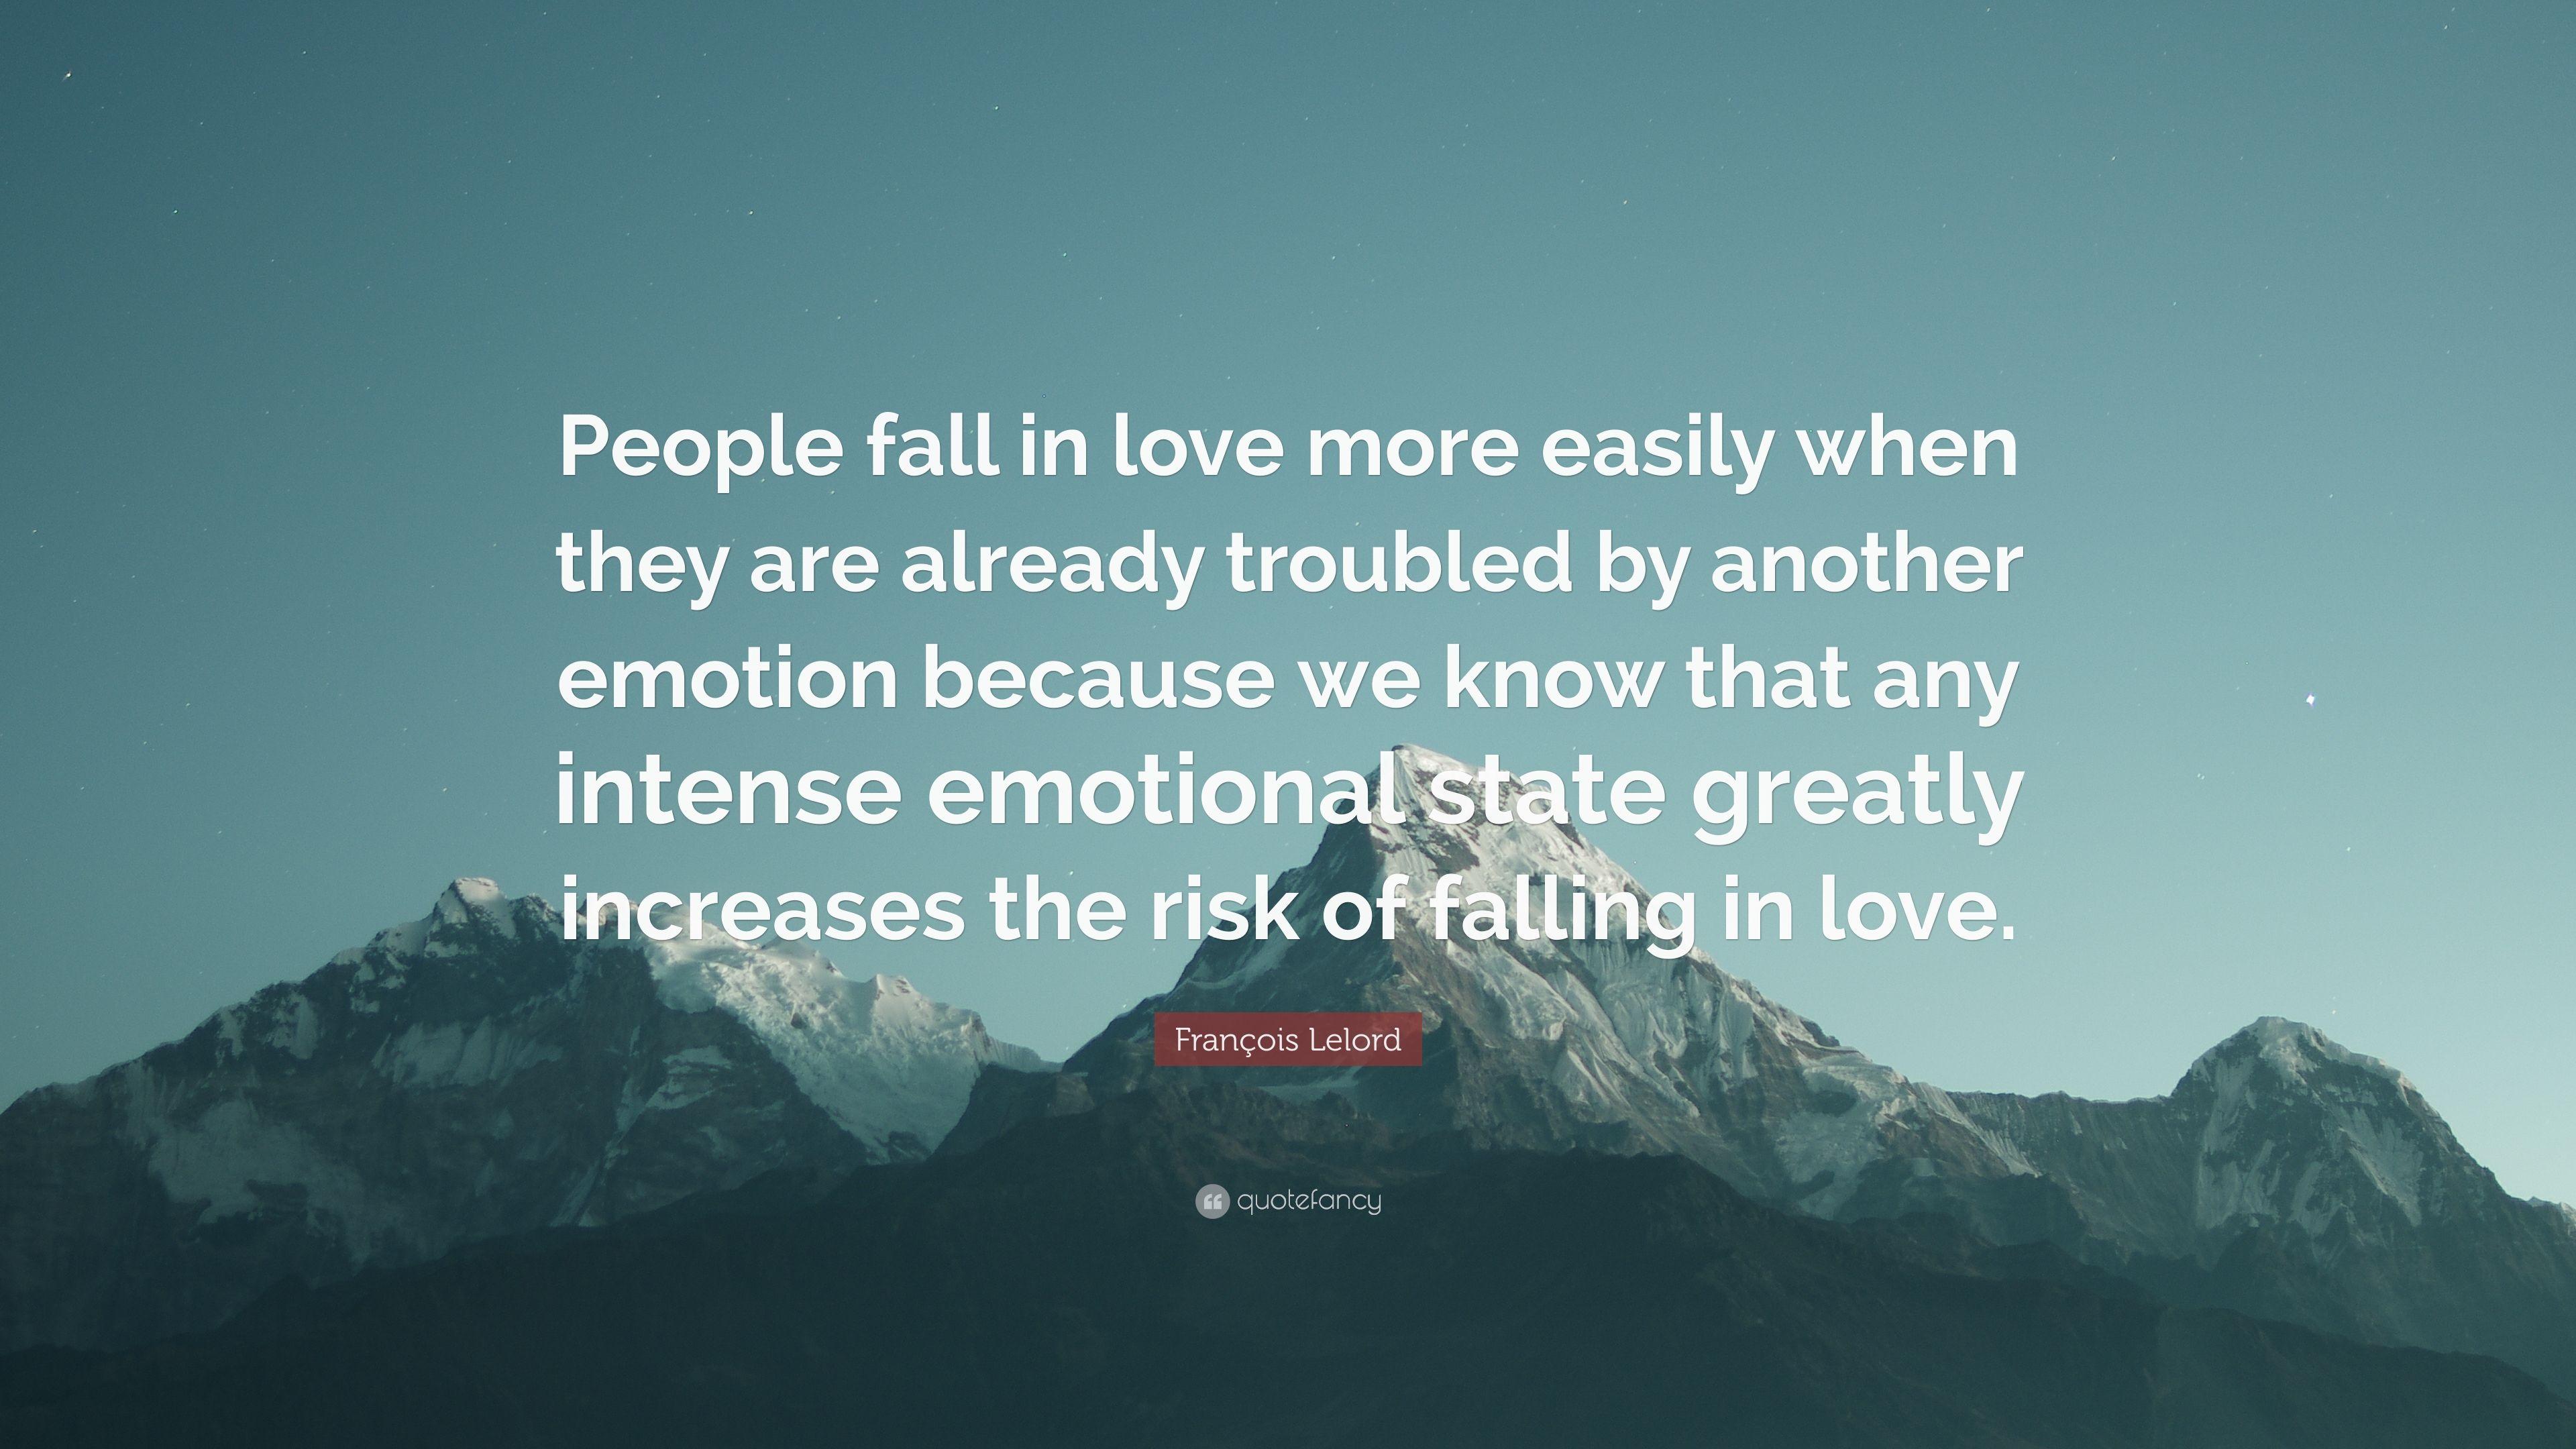 What are the chances of falling in love